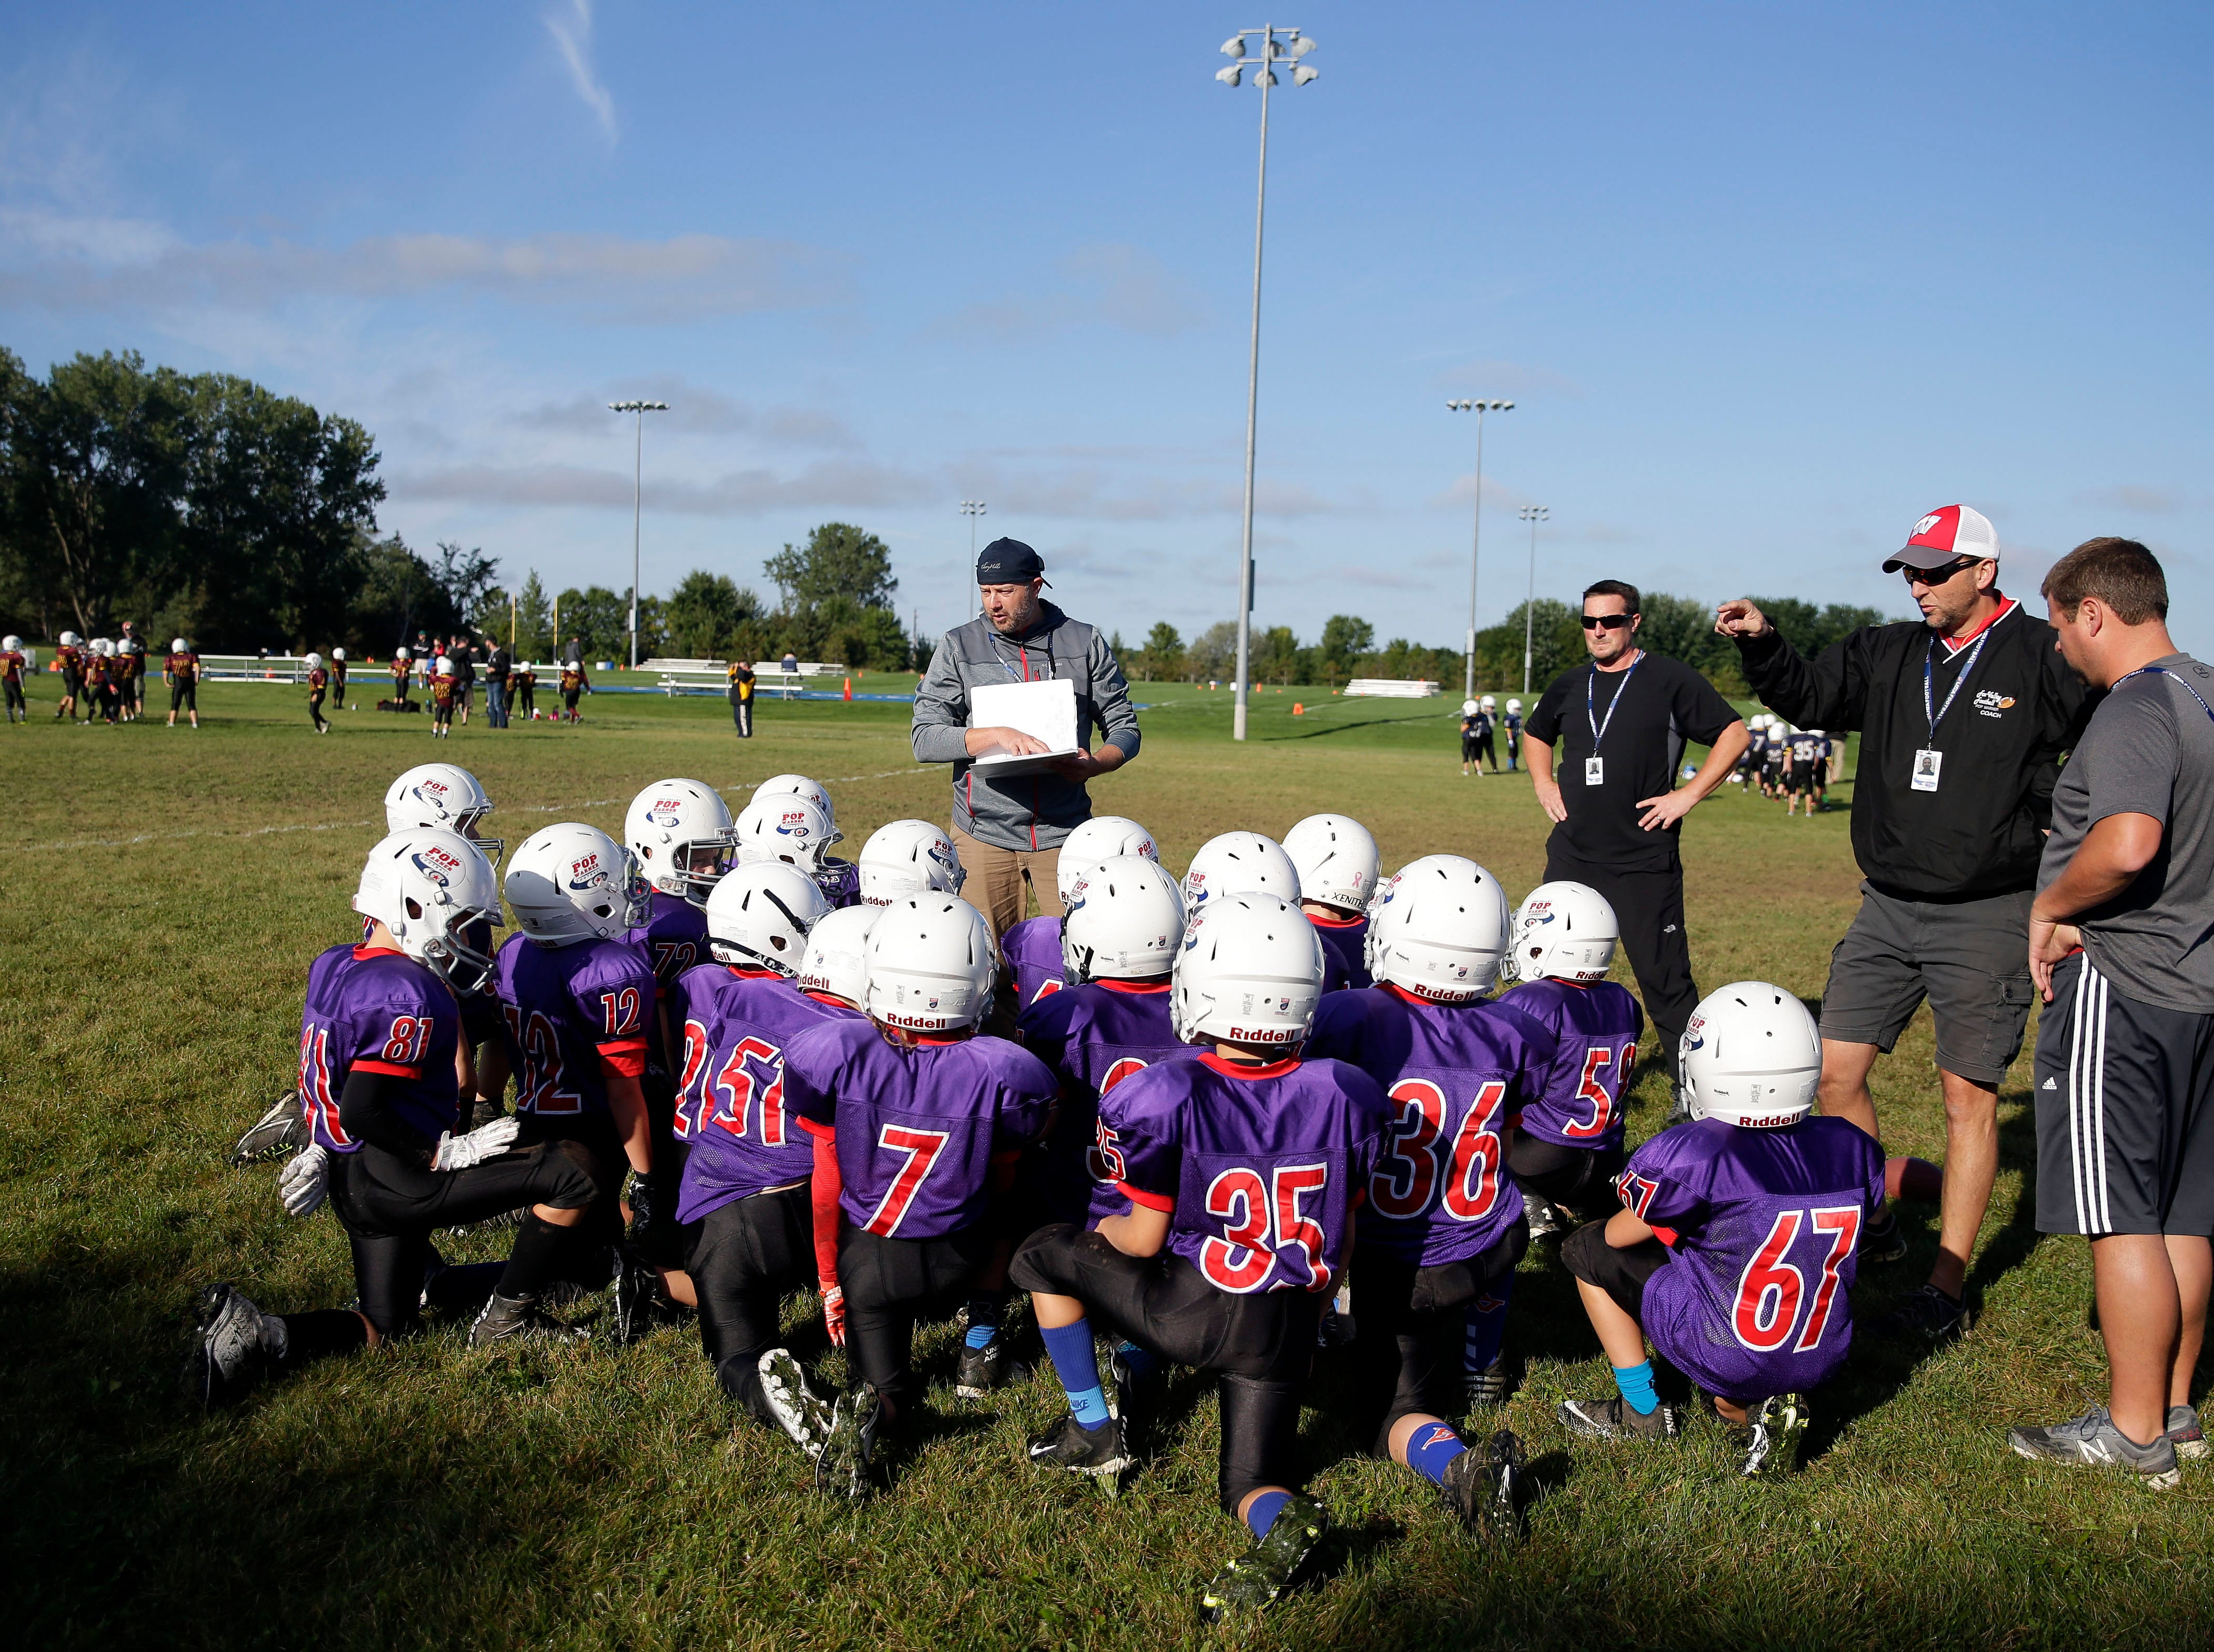 Coach Adam Landsverk, center, and assistants David Gaskill, Clay Tylinski and John Toonen get the Cowboys ready for their game as Fox Valley Pop Warner Football opens the season Saturday, September 8, 2018, at Plamann Park in Grand Chute, Wis.Ron Page/USA TODAY NETWORK-Wisconsin